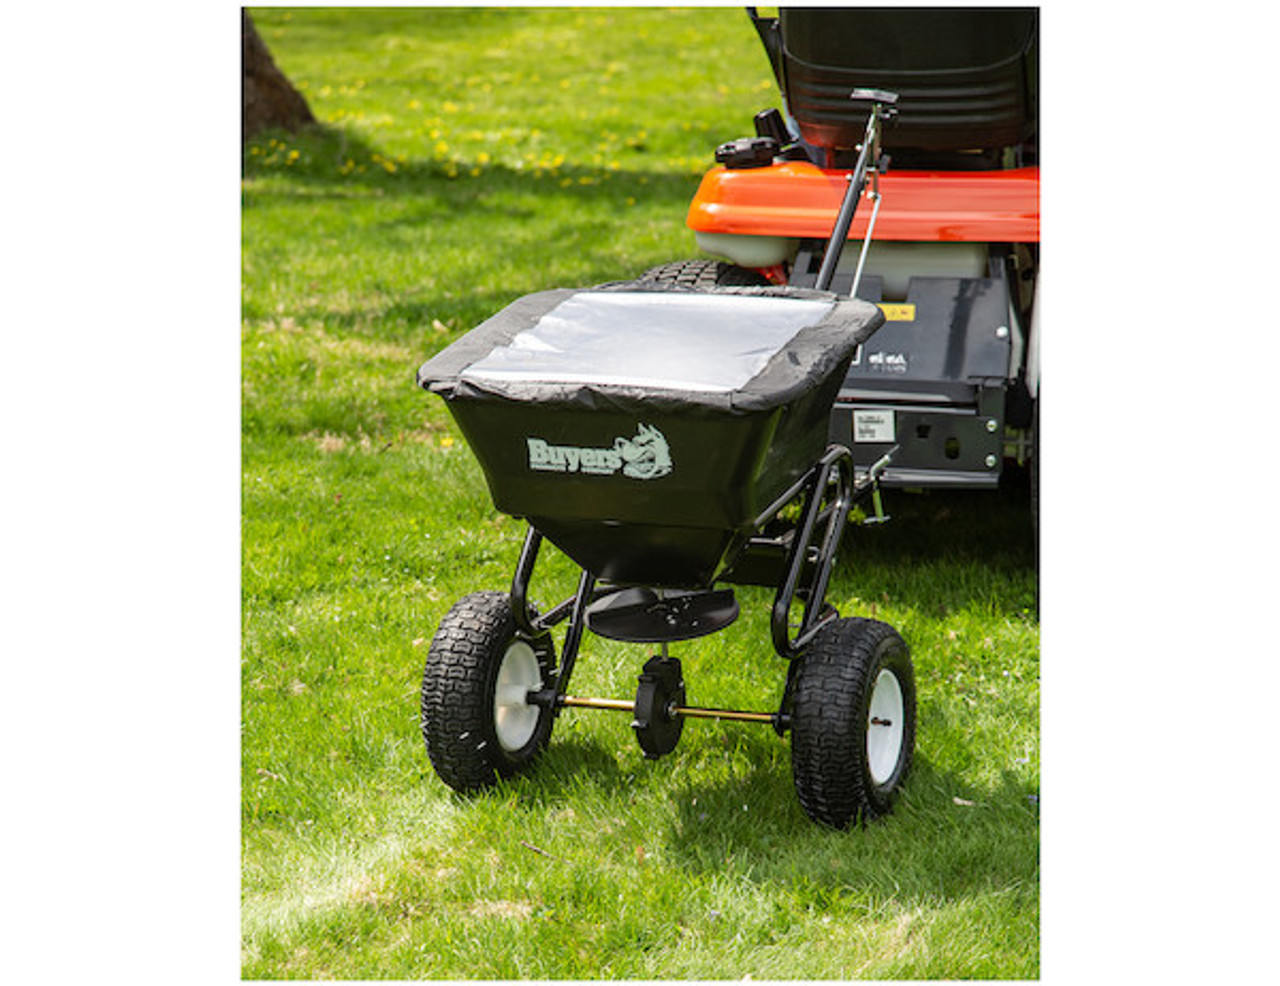 Buyers TB150BG Tow Behind Broadcast Spreader for small tractors, utility vehicles and ATVs Picture # 6